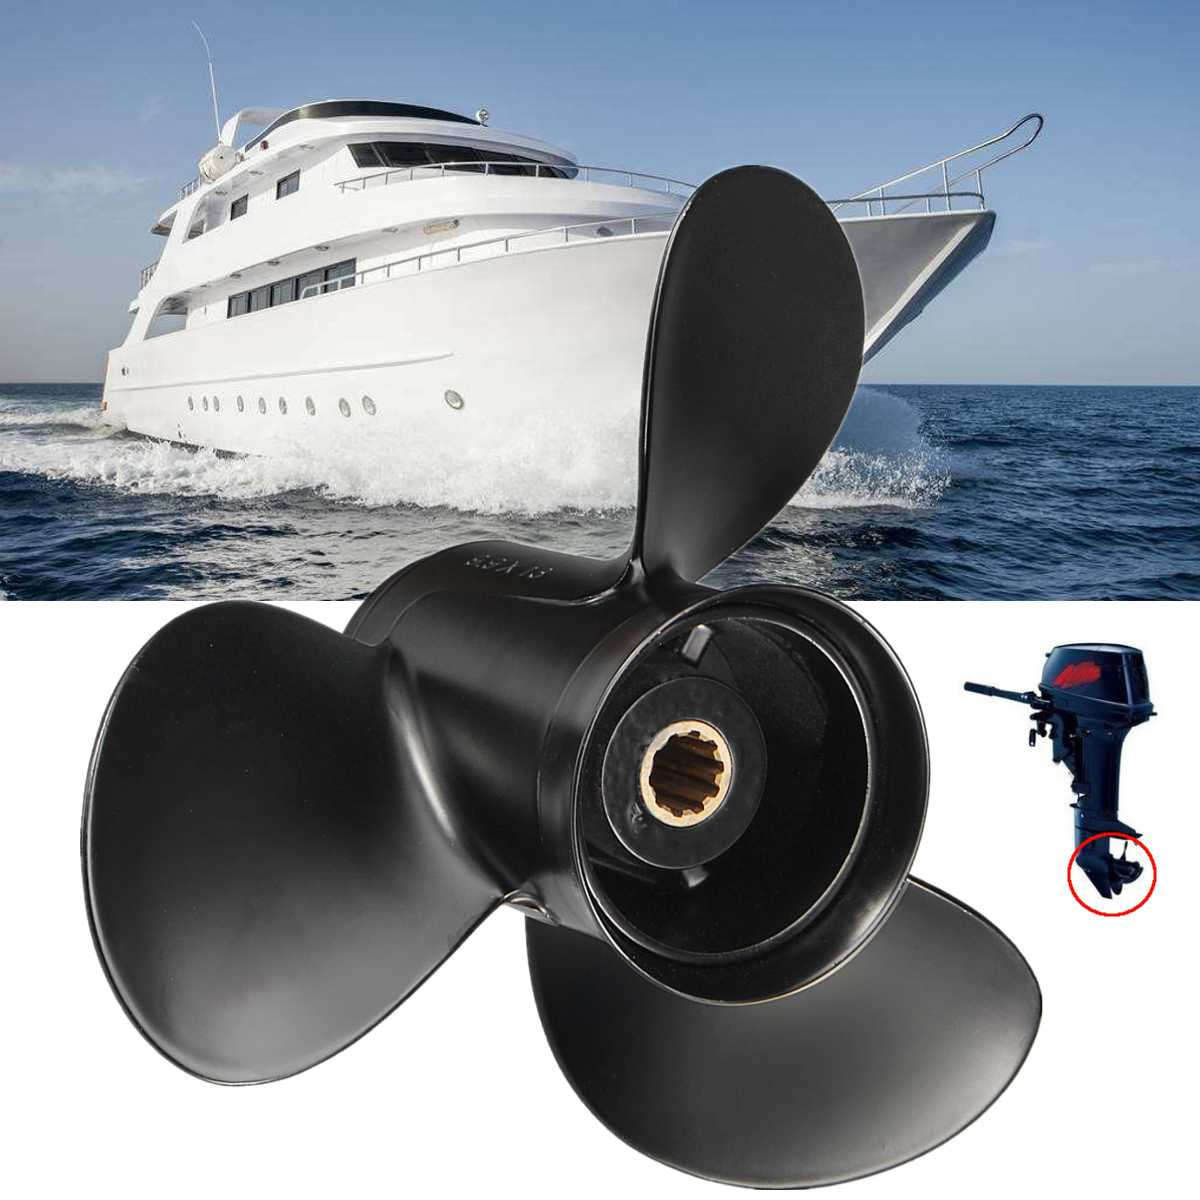 Outboard Propeller 346-64104-5/3R0B645270 for Tohatsu Mariner for Mercury for Nissan 25-30HP 10 Spline Tooths Aluminium AlloyOutboard Propeller 346-64104-5/3R0B645270 for Tohatsu Mariner for Mercury for Nissan 25-30HP 10 Spline Tooths Aluminium Alloy